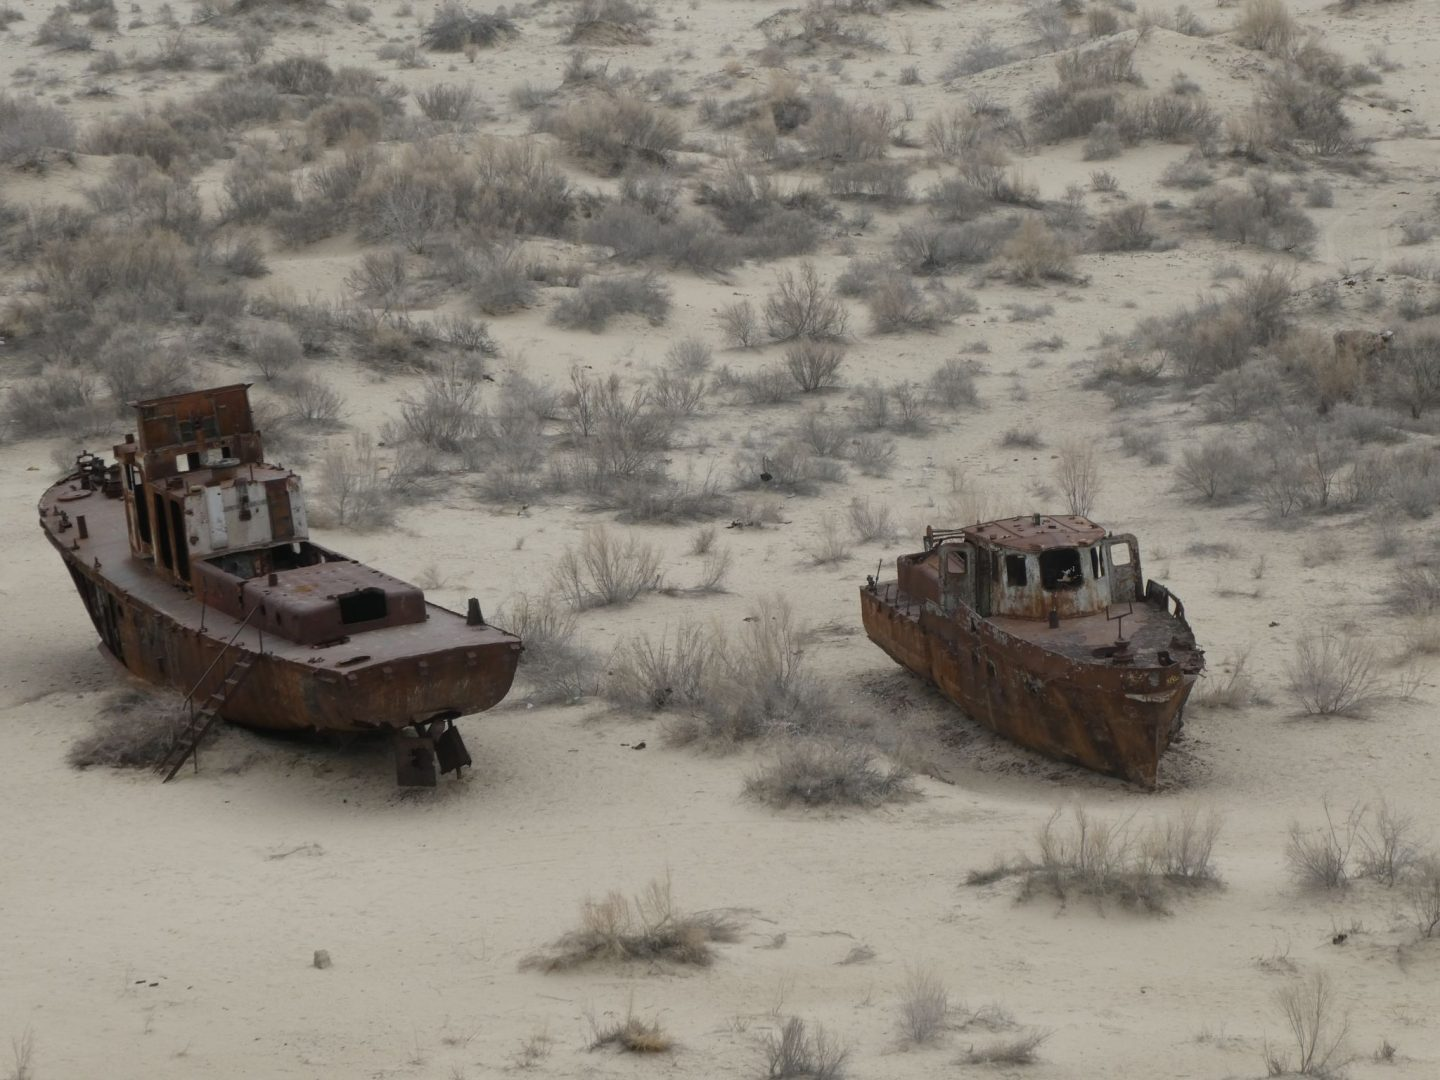 The Aral Sea (23 and 24 March 2018)